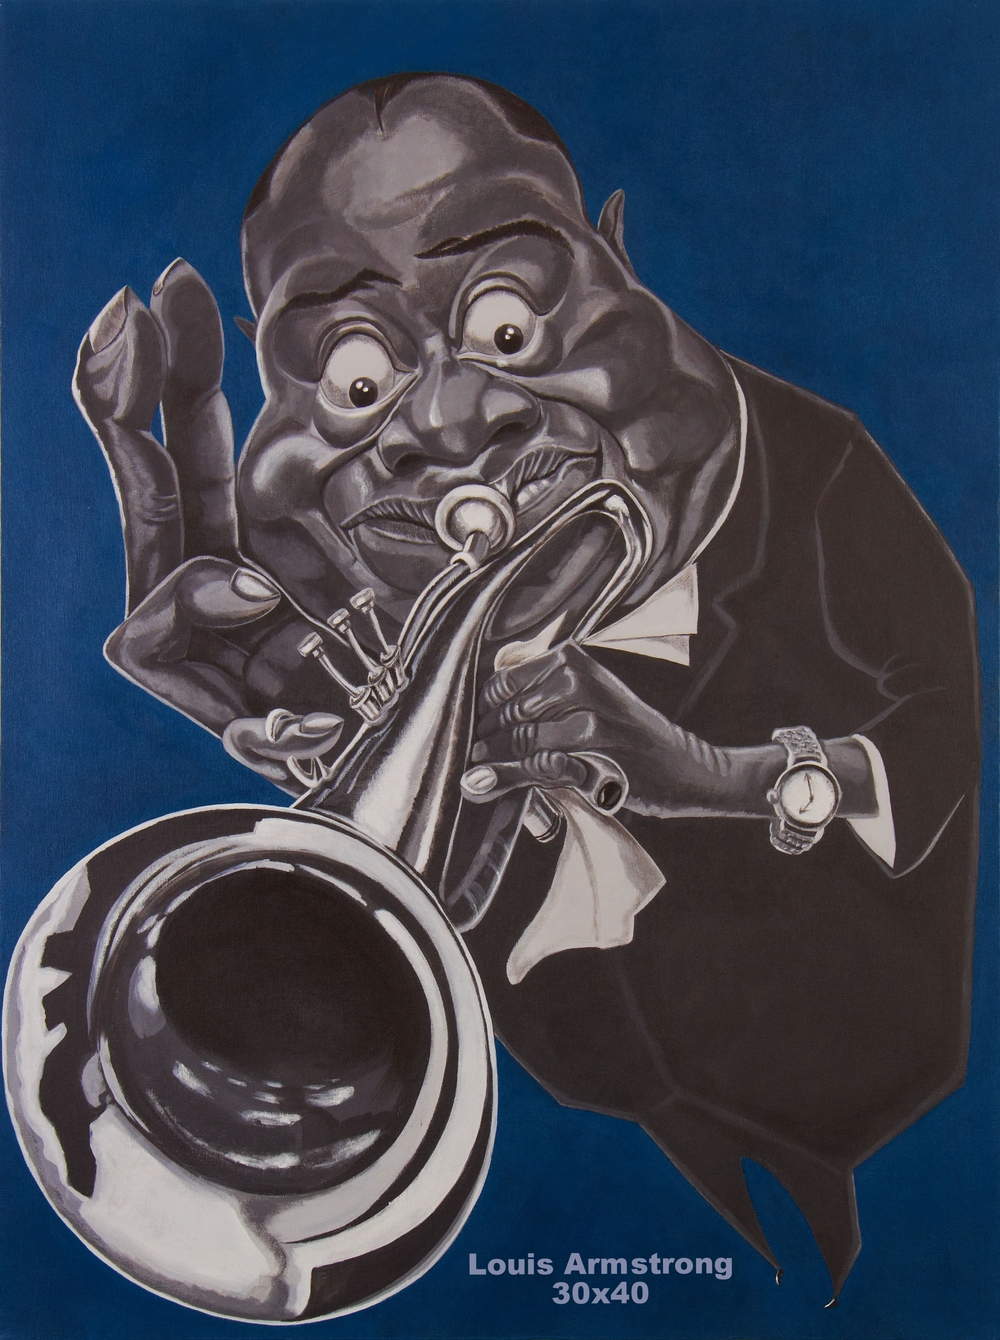 Louis Armstrong.jpg